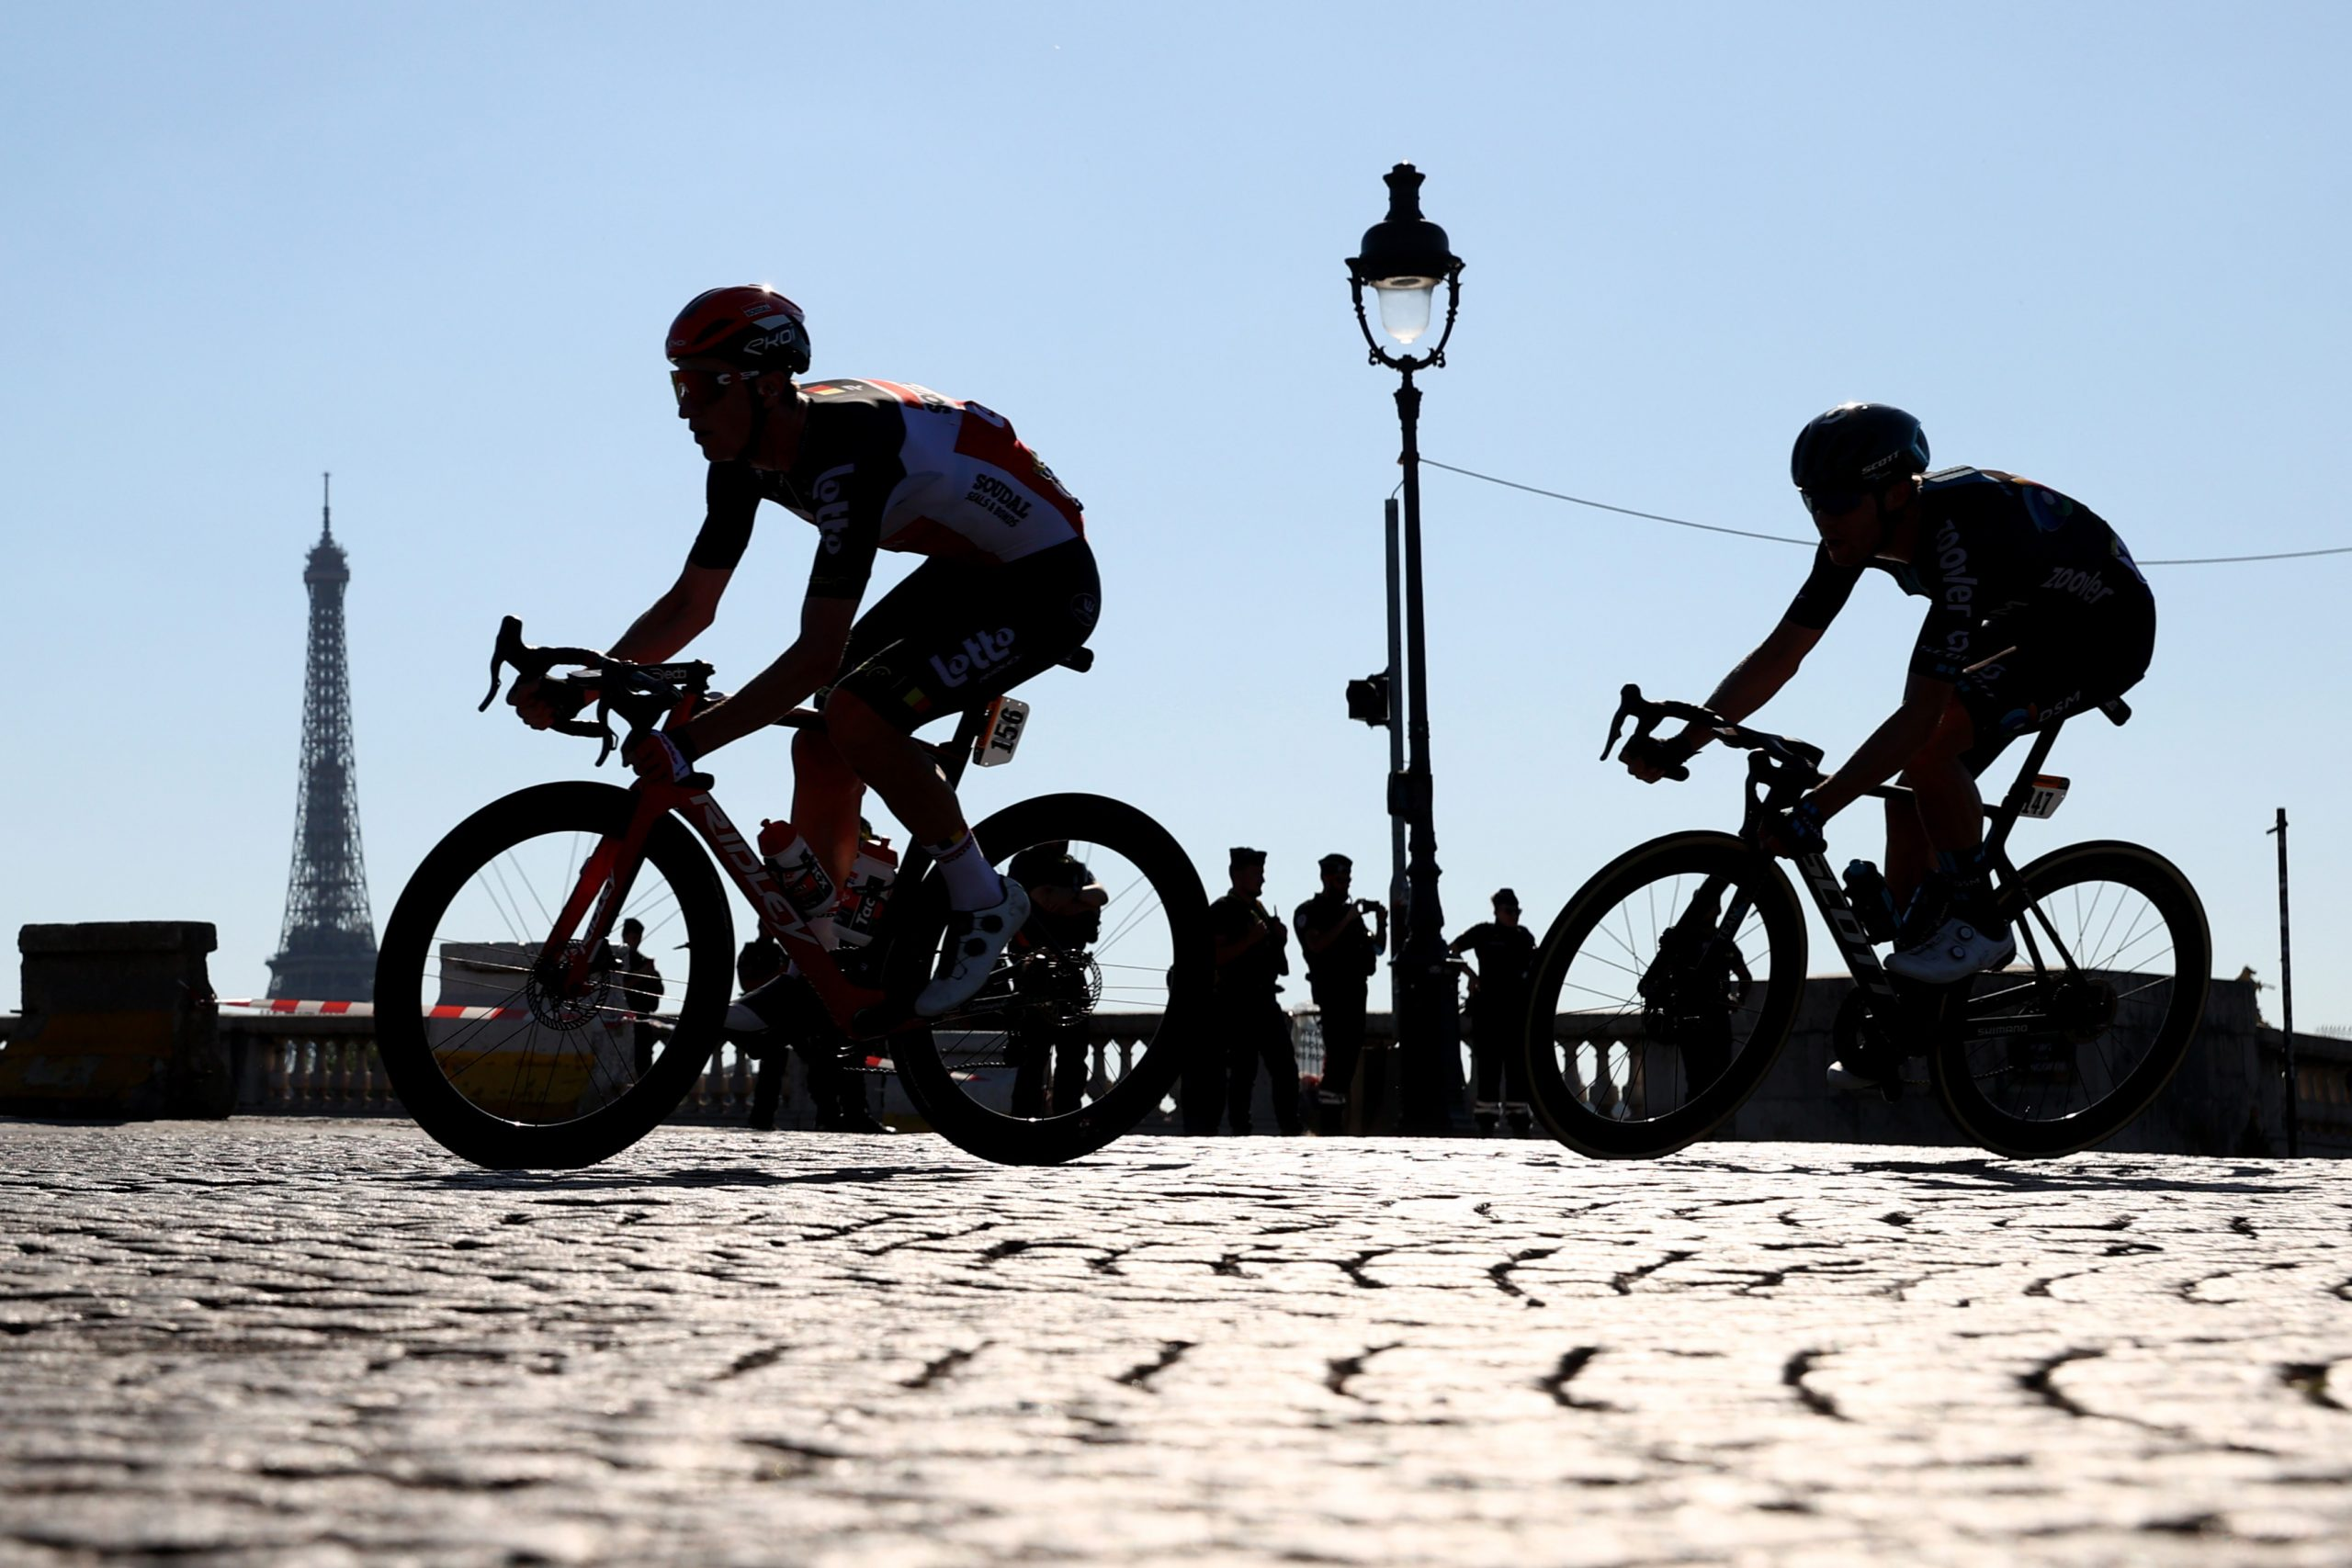 Harry Sweeny of Australia and Casper Pedersen of Denmark during stage 21 of the Tour de France, 18 July, 2021